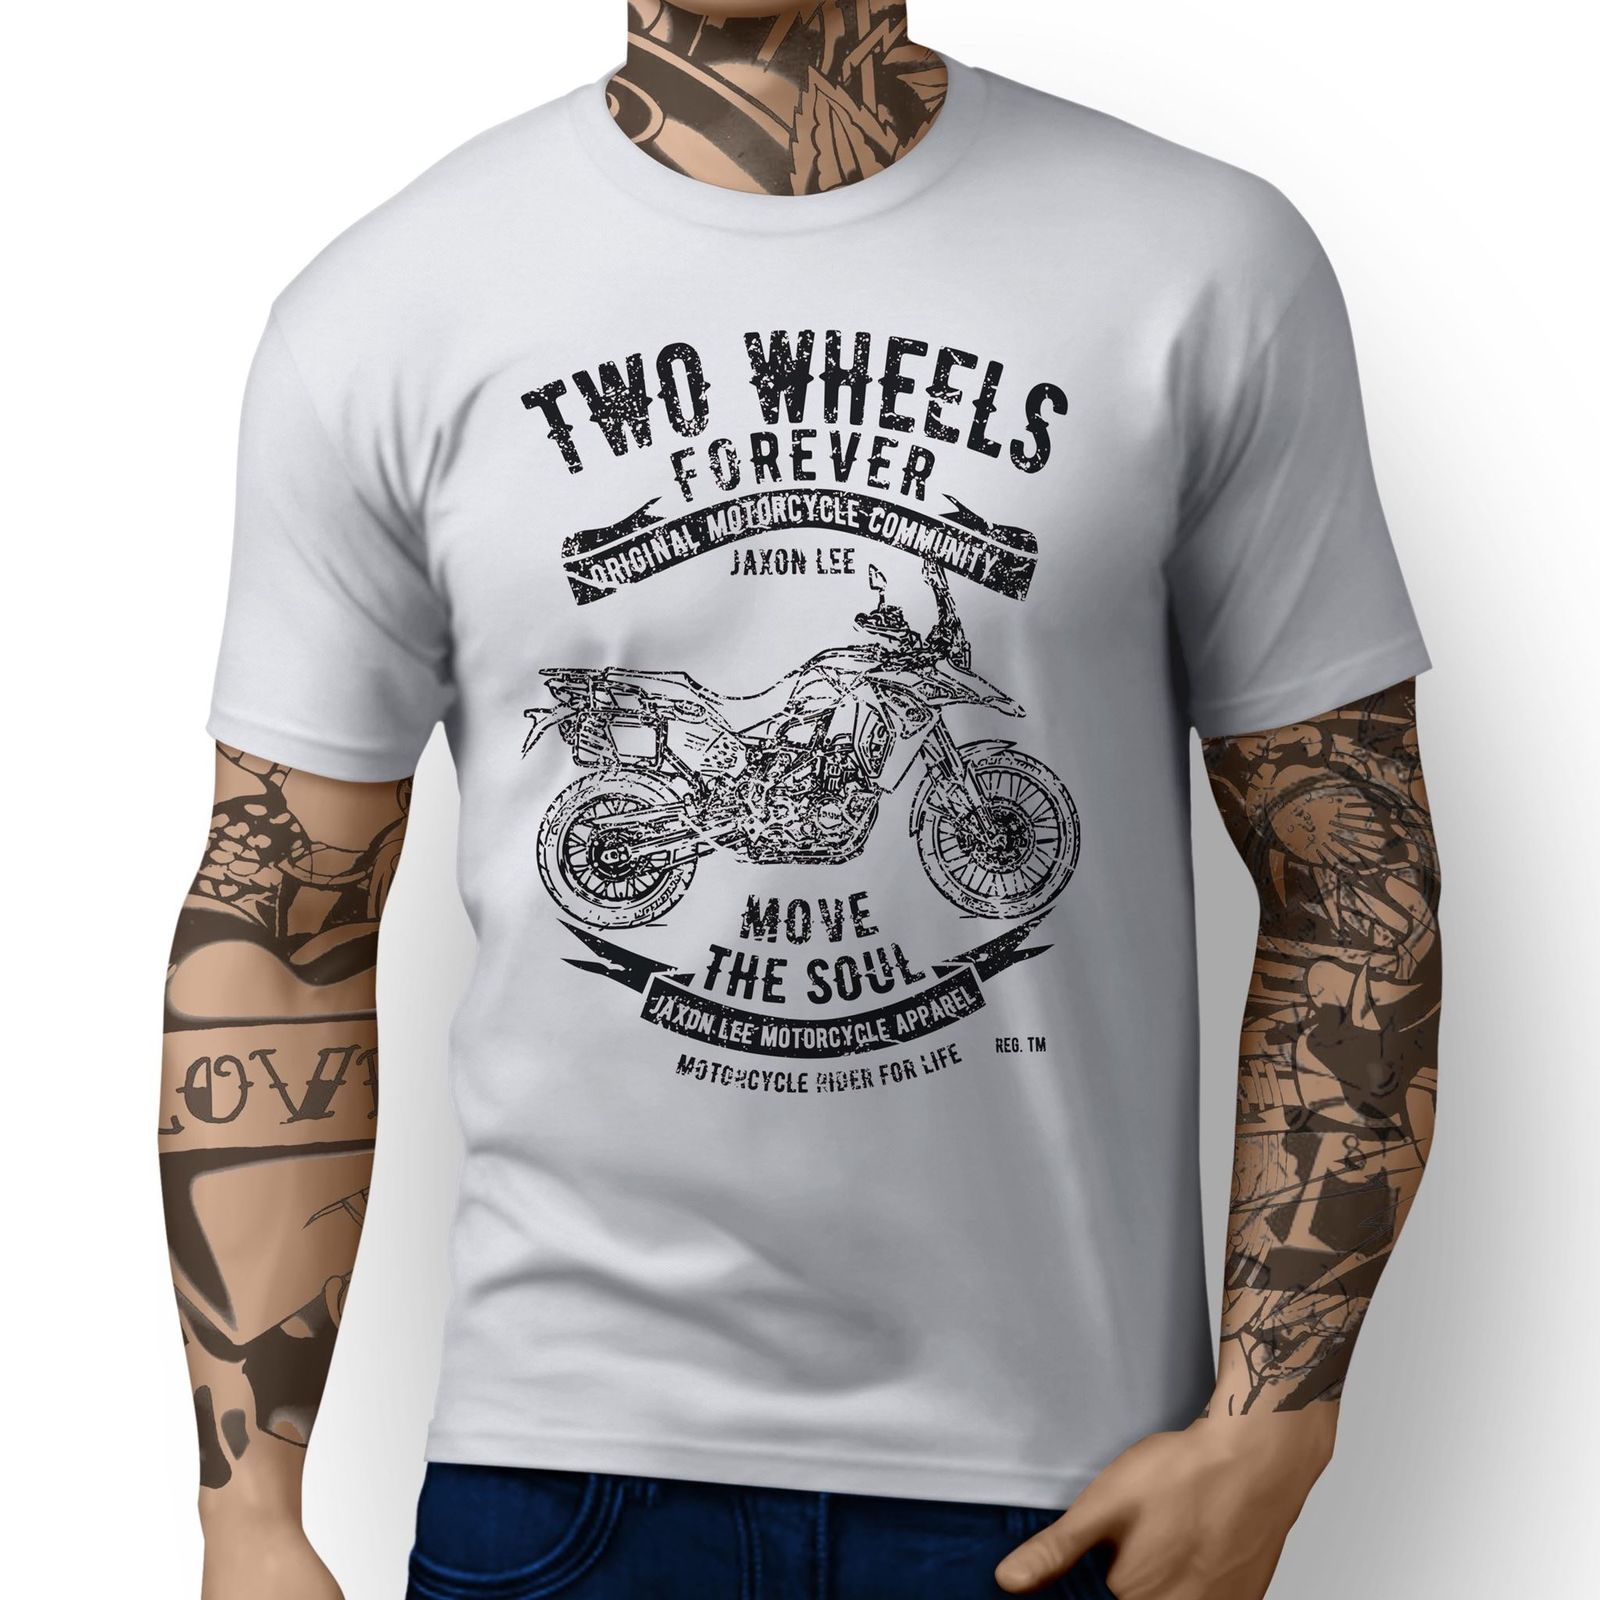 Us 12 74 15 Off 2019 New Cool Tee Shirt Germany Adventure F800gs Adventure Inspired Motorcycle Art Design T Shirts In T Shirts From Men S Clothing